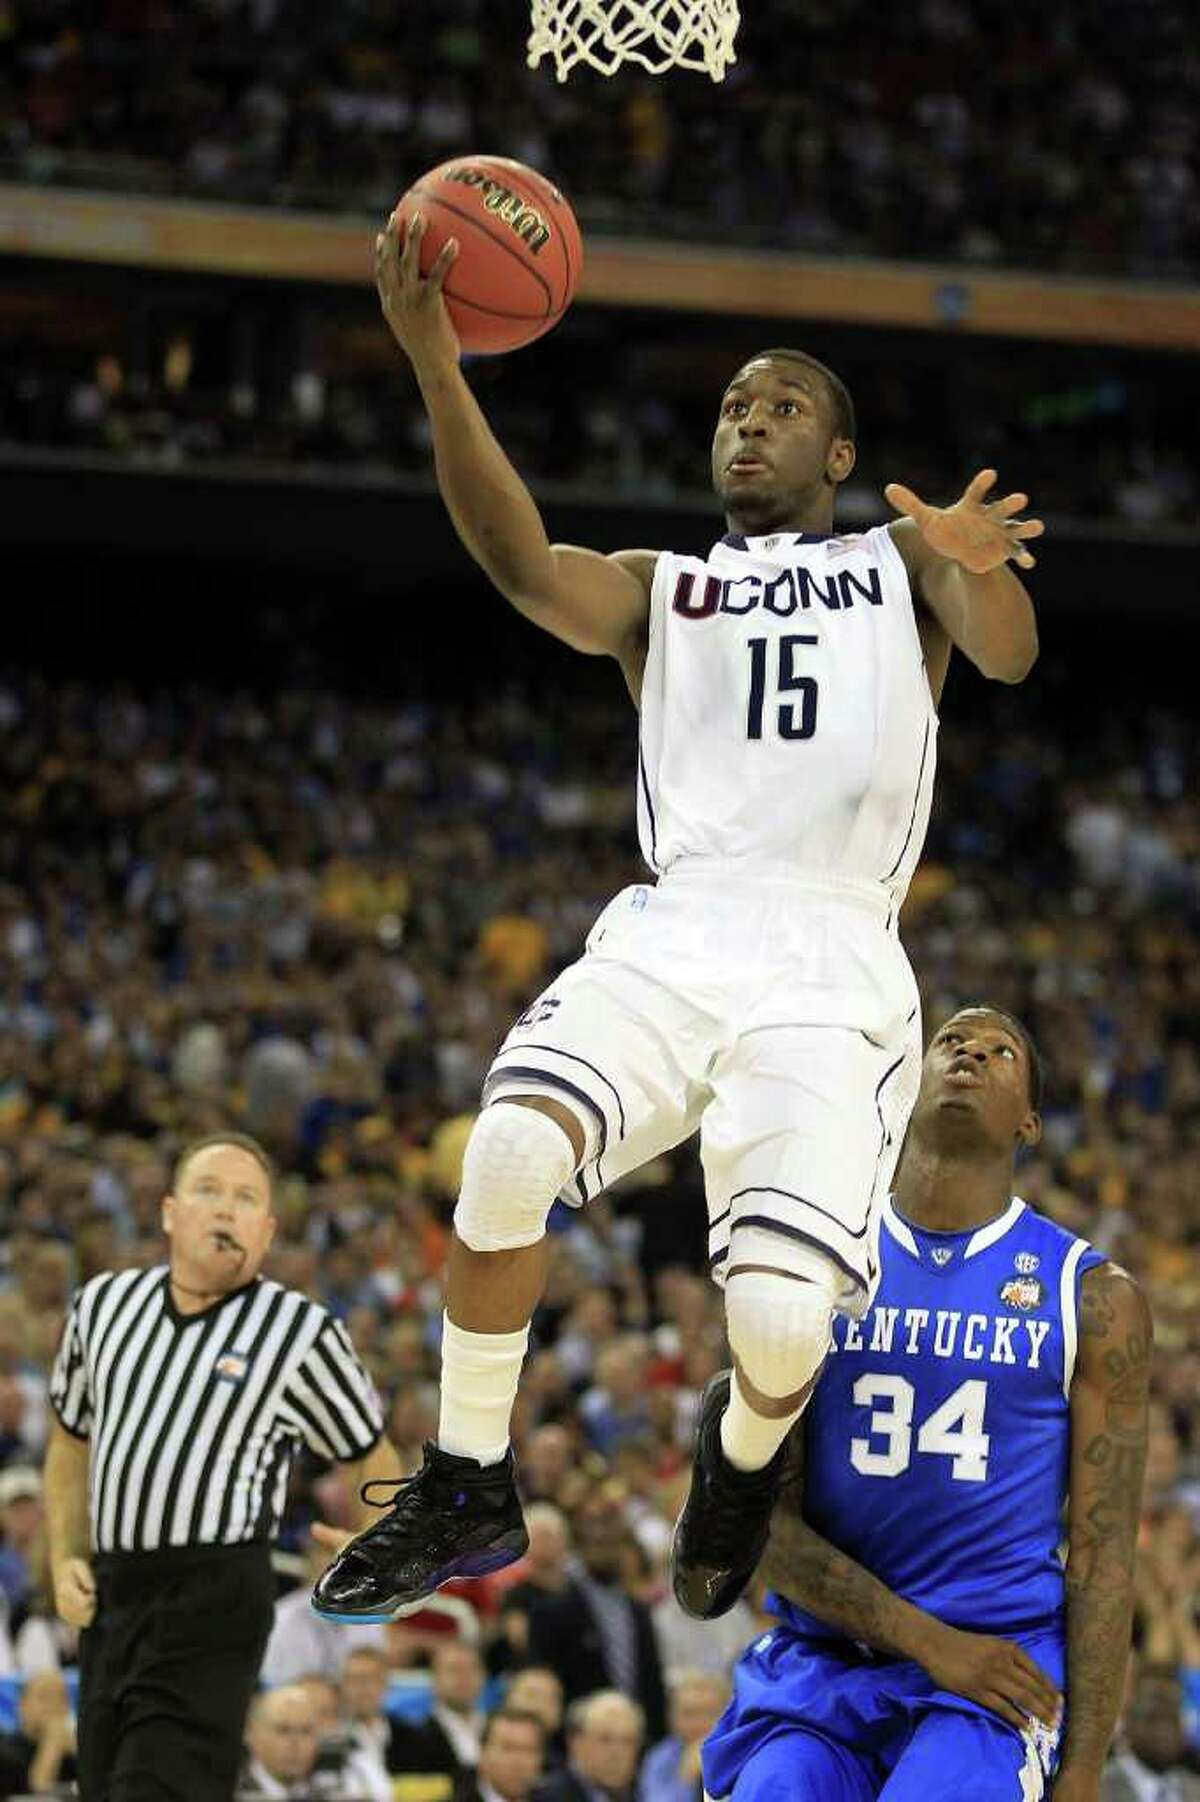 HOUSTON, TX - APRIL 02: Kemba Walker #15 of the Connecticut Huskies goes to the hoop against the Kentucky Wildcats during the National Semifinal game of the 2011 NCAA Division I Men's Basketball Championship at Reliant Stadium on April 2, 2011 in Houston, Texas. (Photo by Streeter Lecka/Getty Images) *** Local Caption *** Kemba Walker